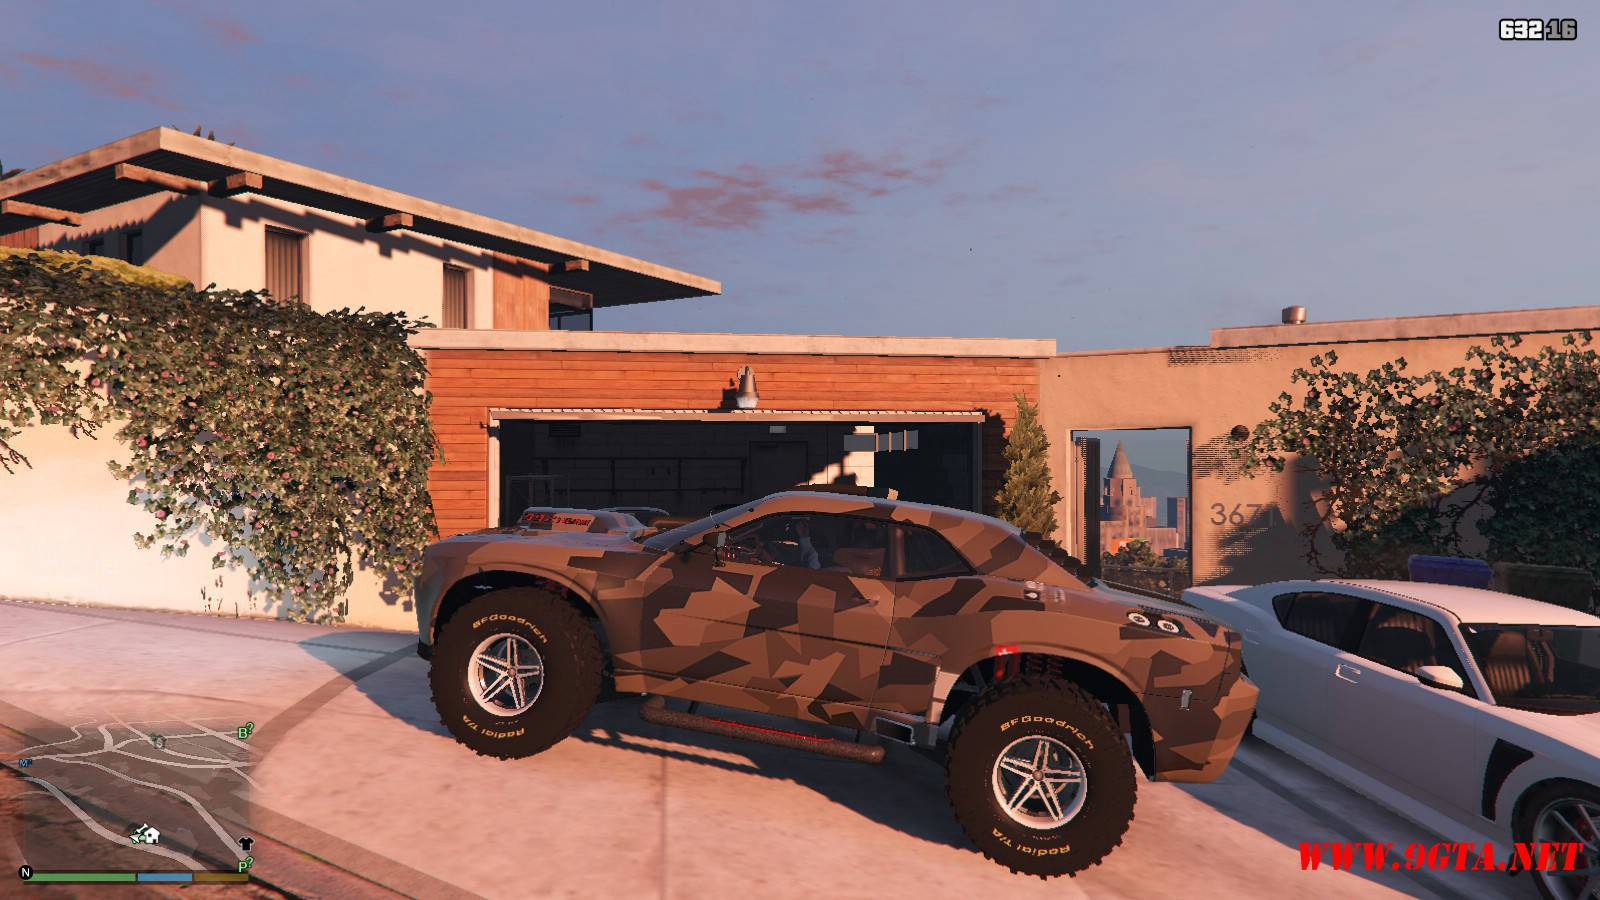 Dodge Charger RAID v1.0 Mod For GTA5 (2)